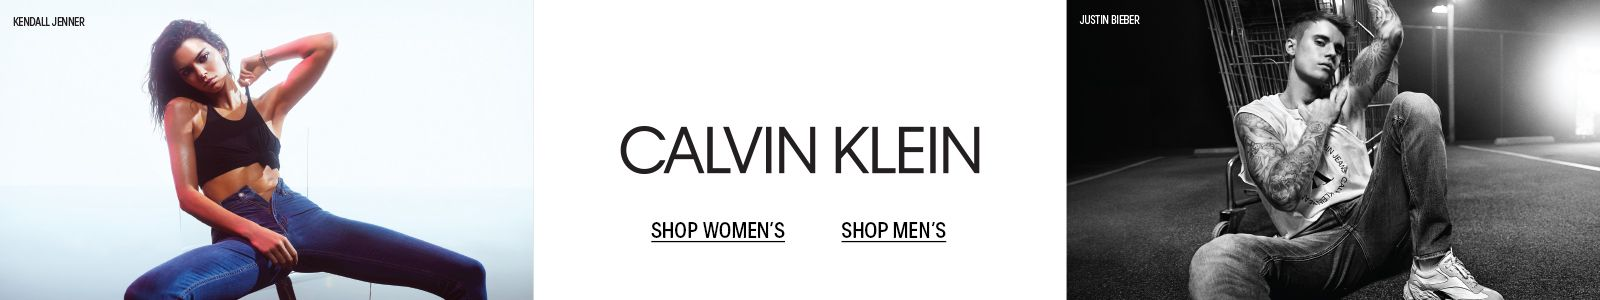 Calvin Klein, Shop Women's, Shop Men's